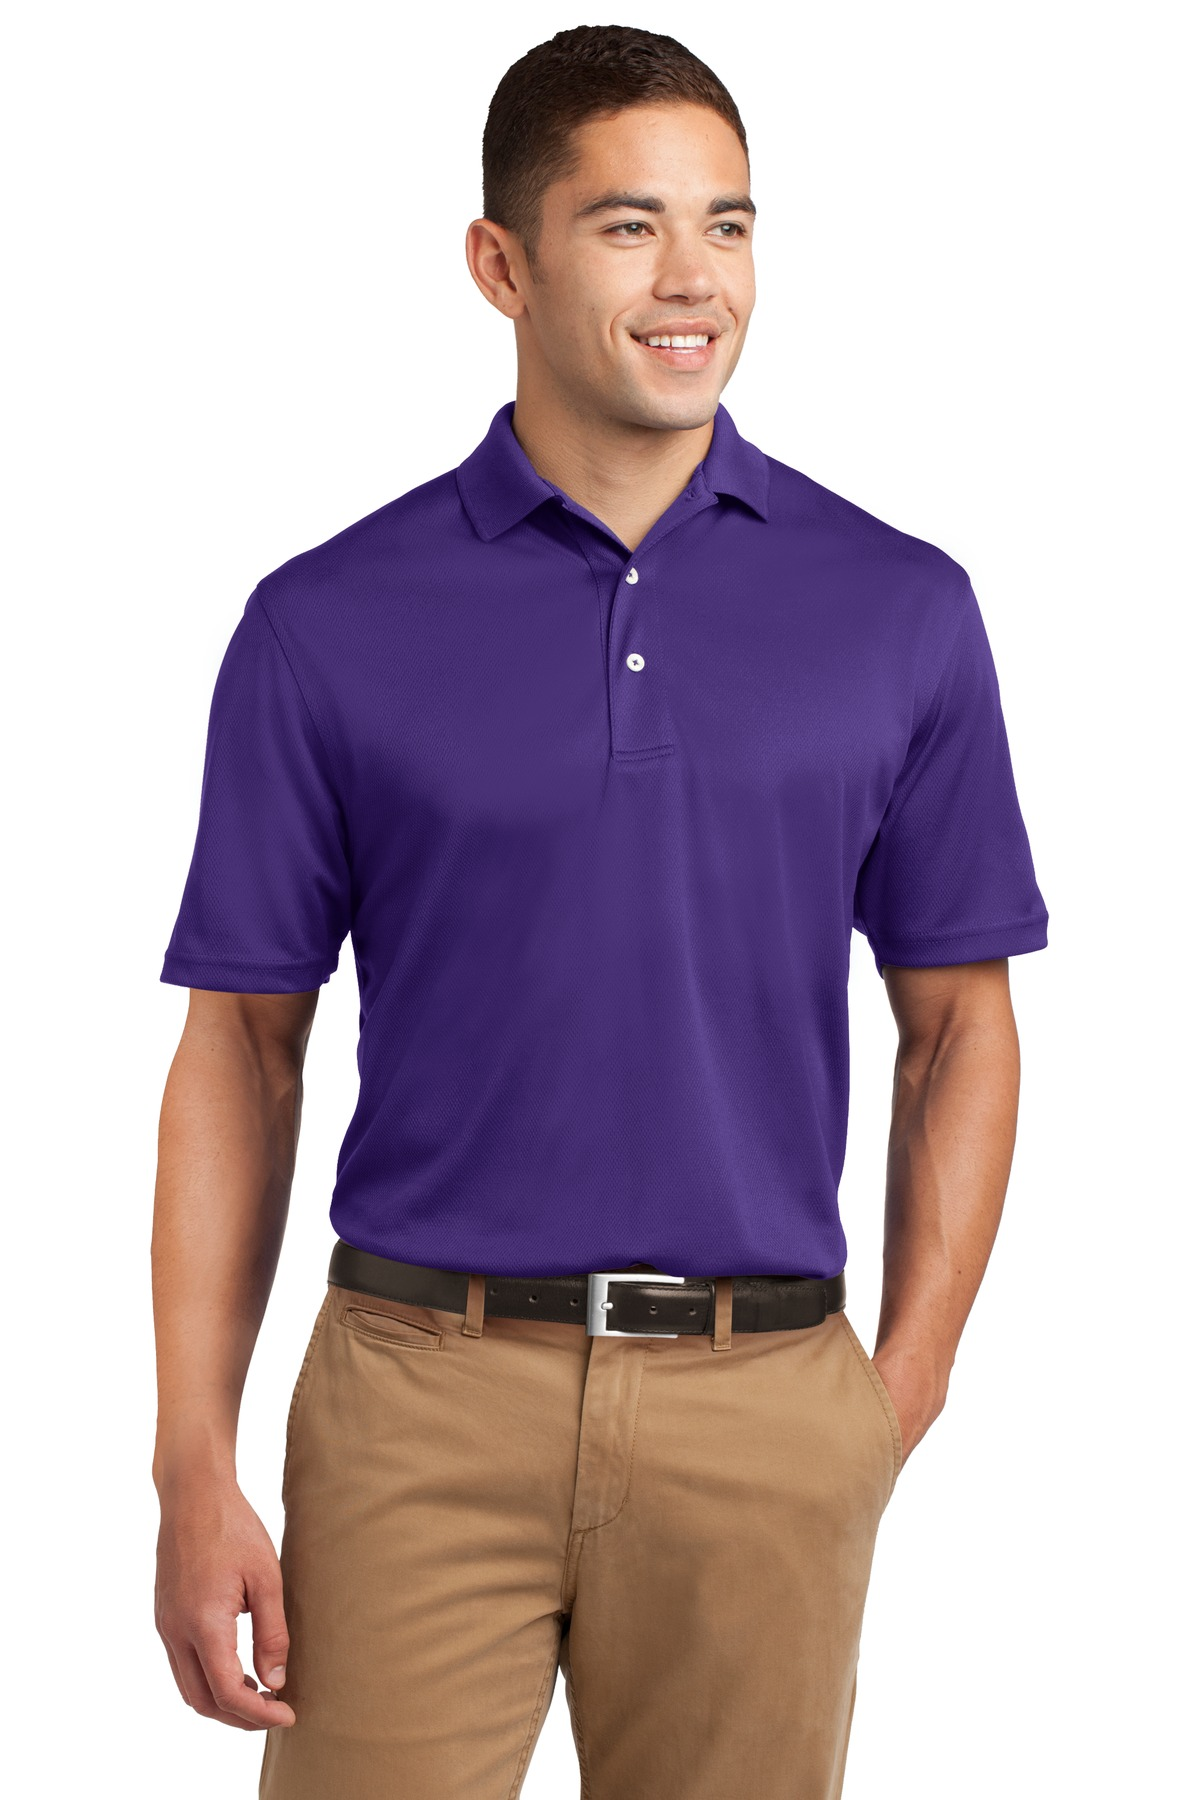 Sport-Tek ®  Dri-Mesh ®  Polo.  K469 - Purple